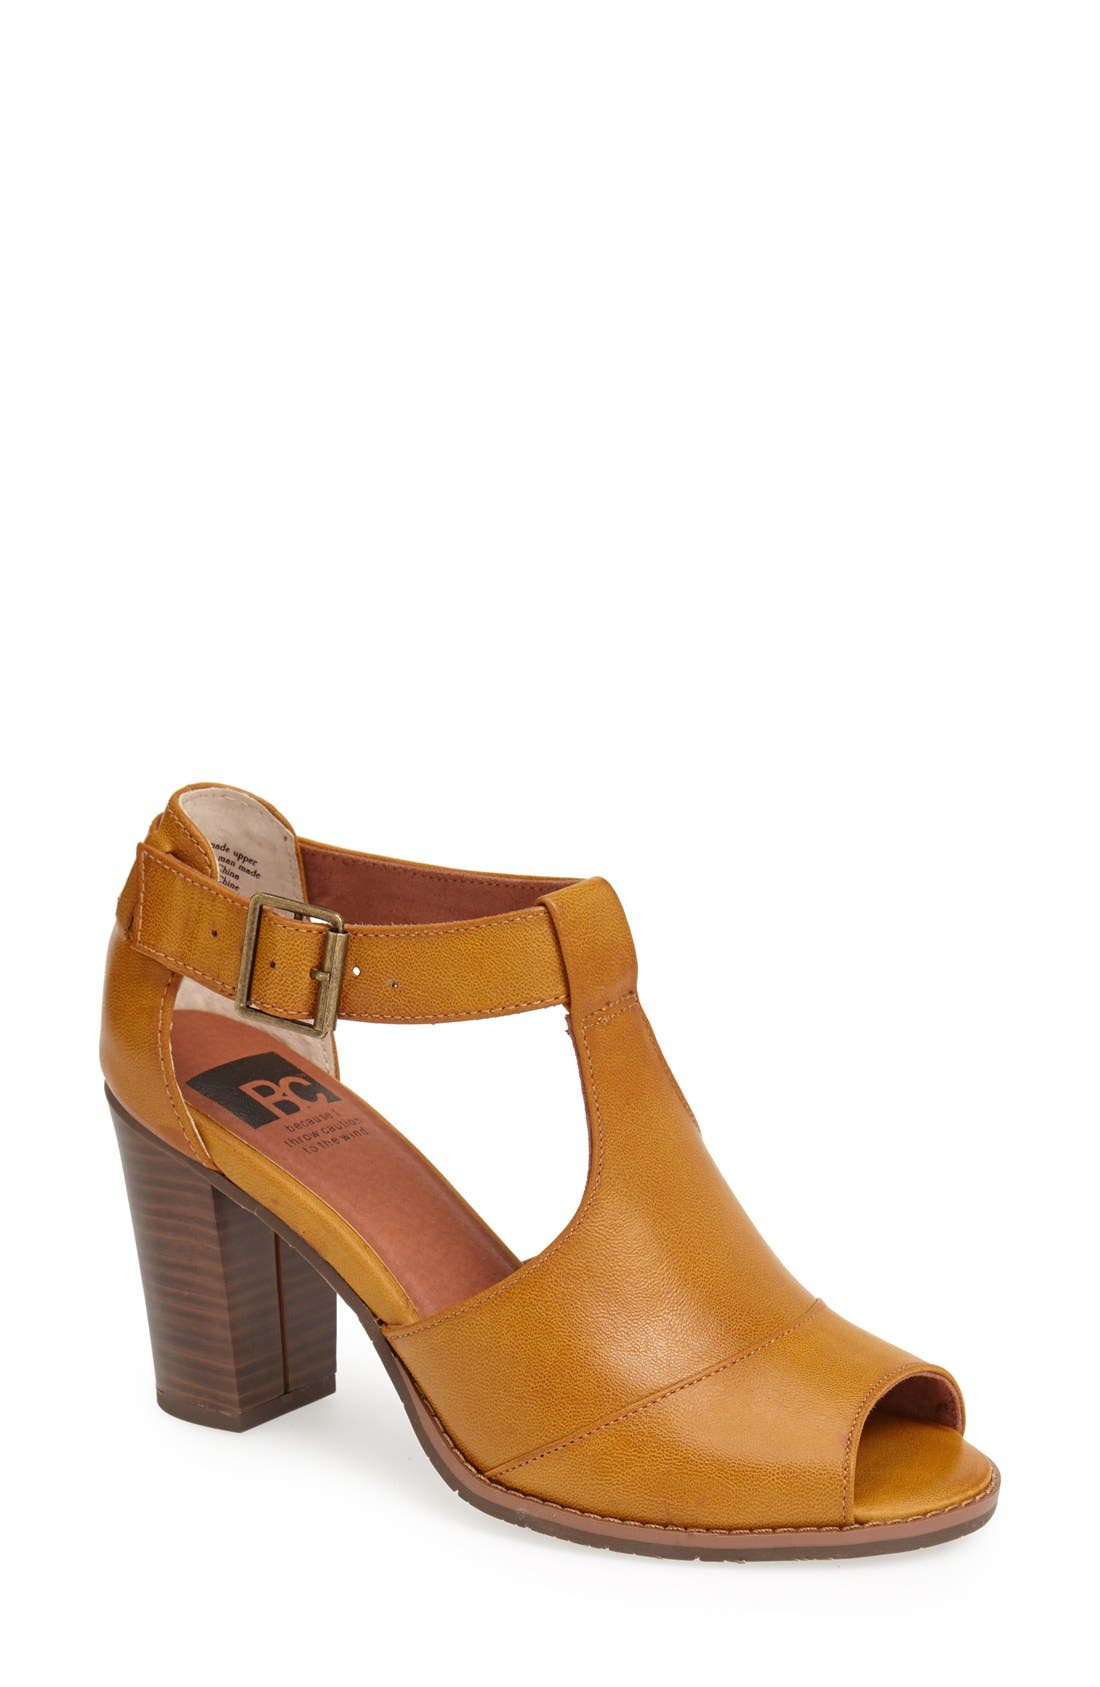 Alternate Image 1 Selected - BC Footwear 'Away We Go' Open Toe Sandal (Women)